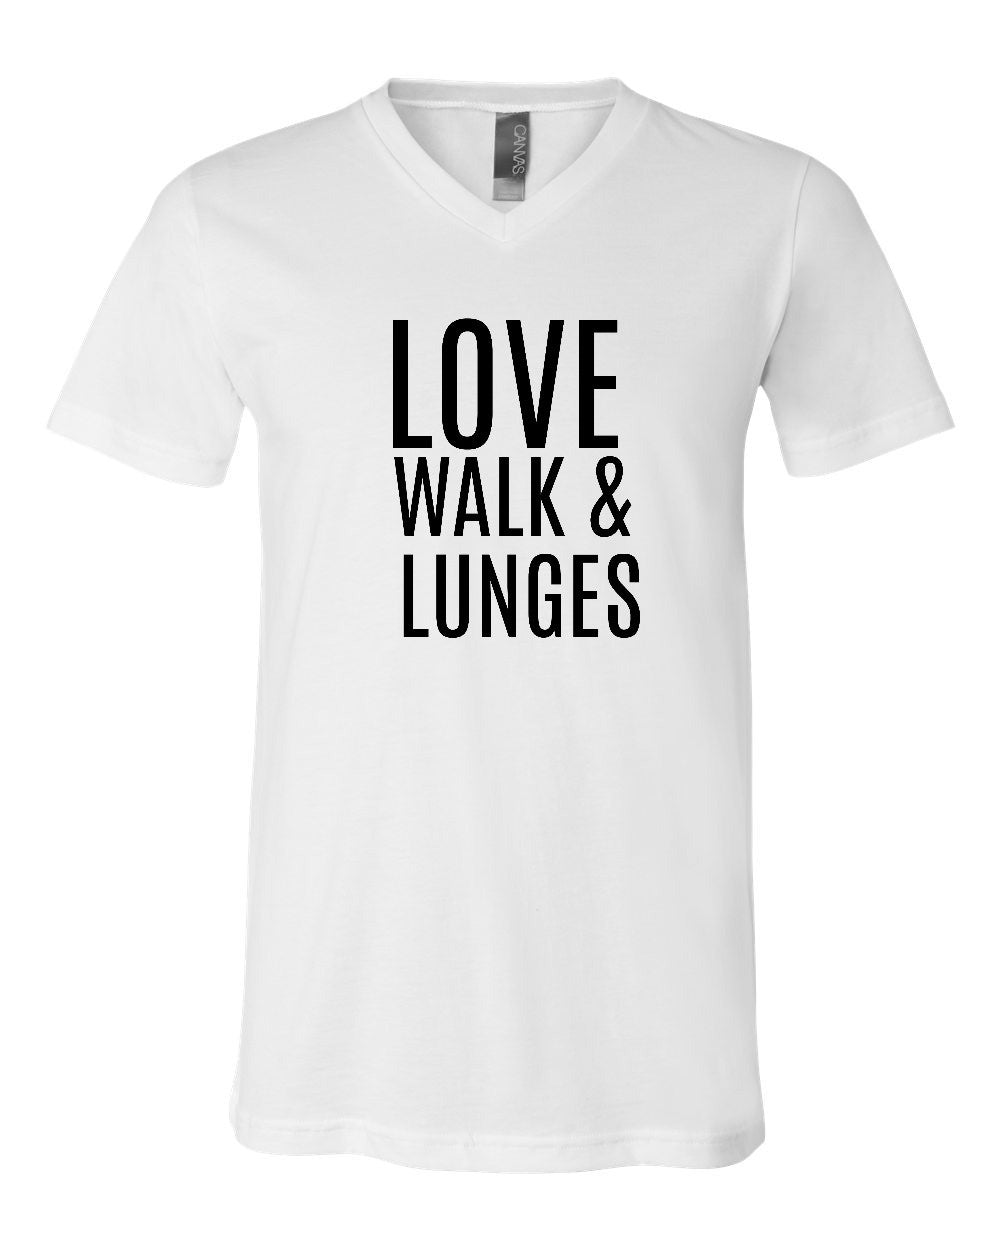 Love Walk & Lunges V-Neck Shirt